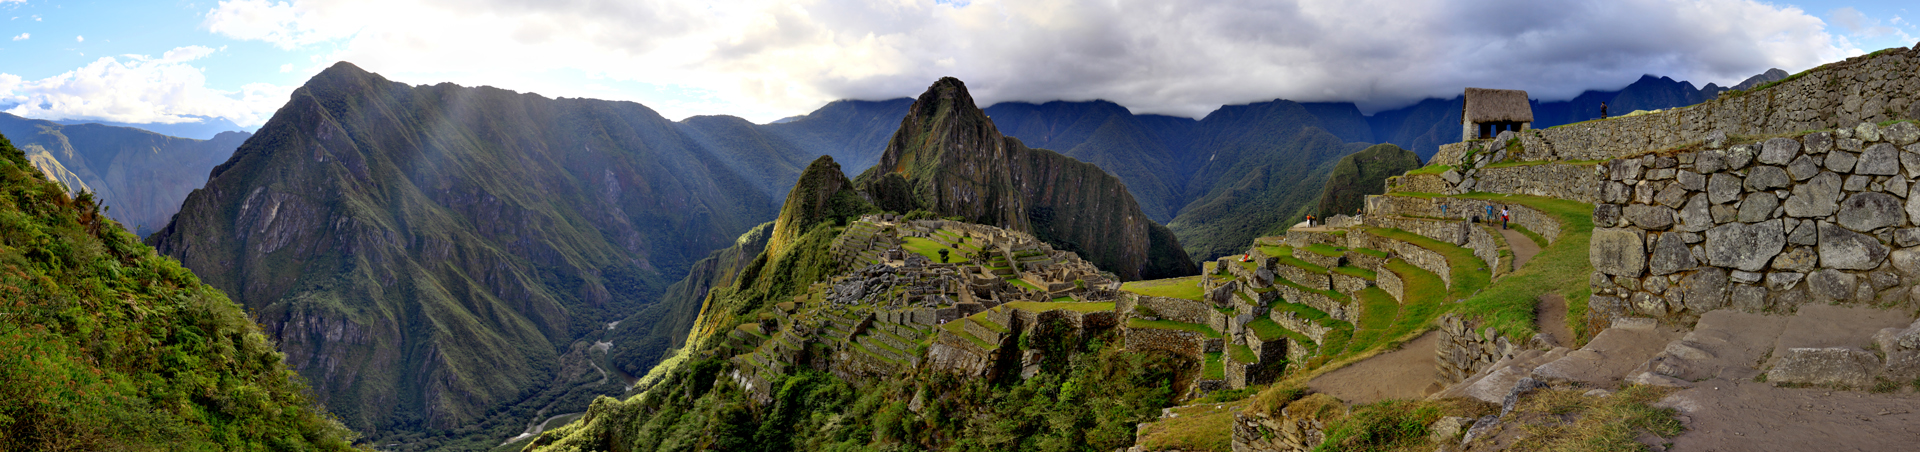 machu picchu inka jungle trail